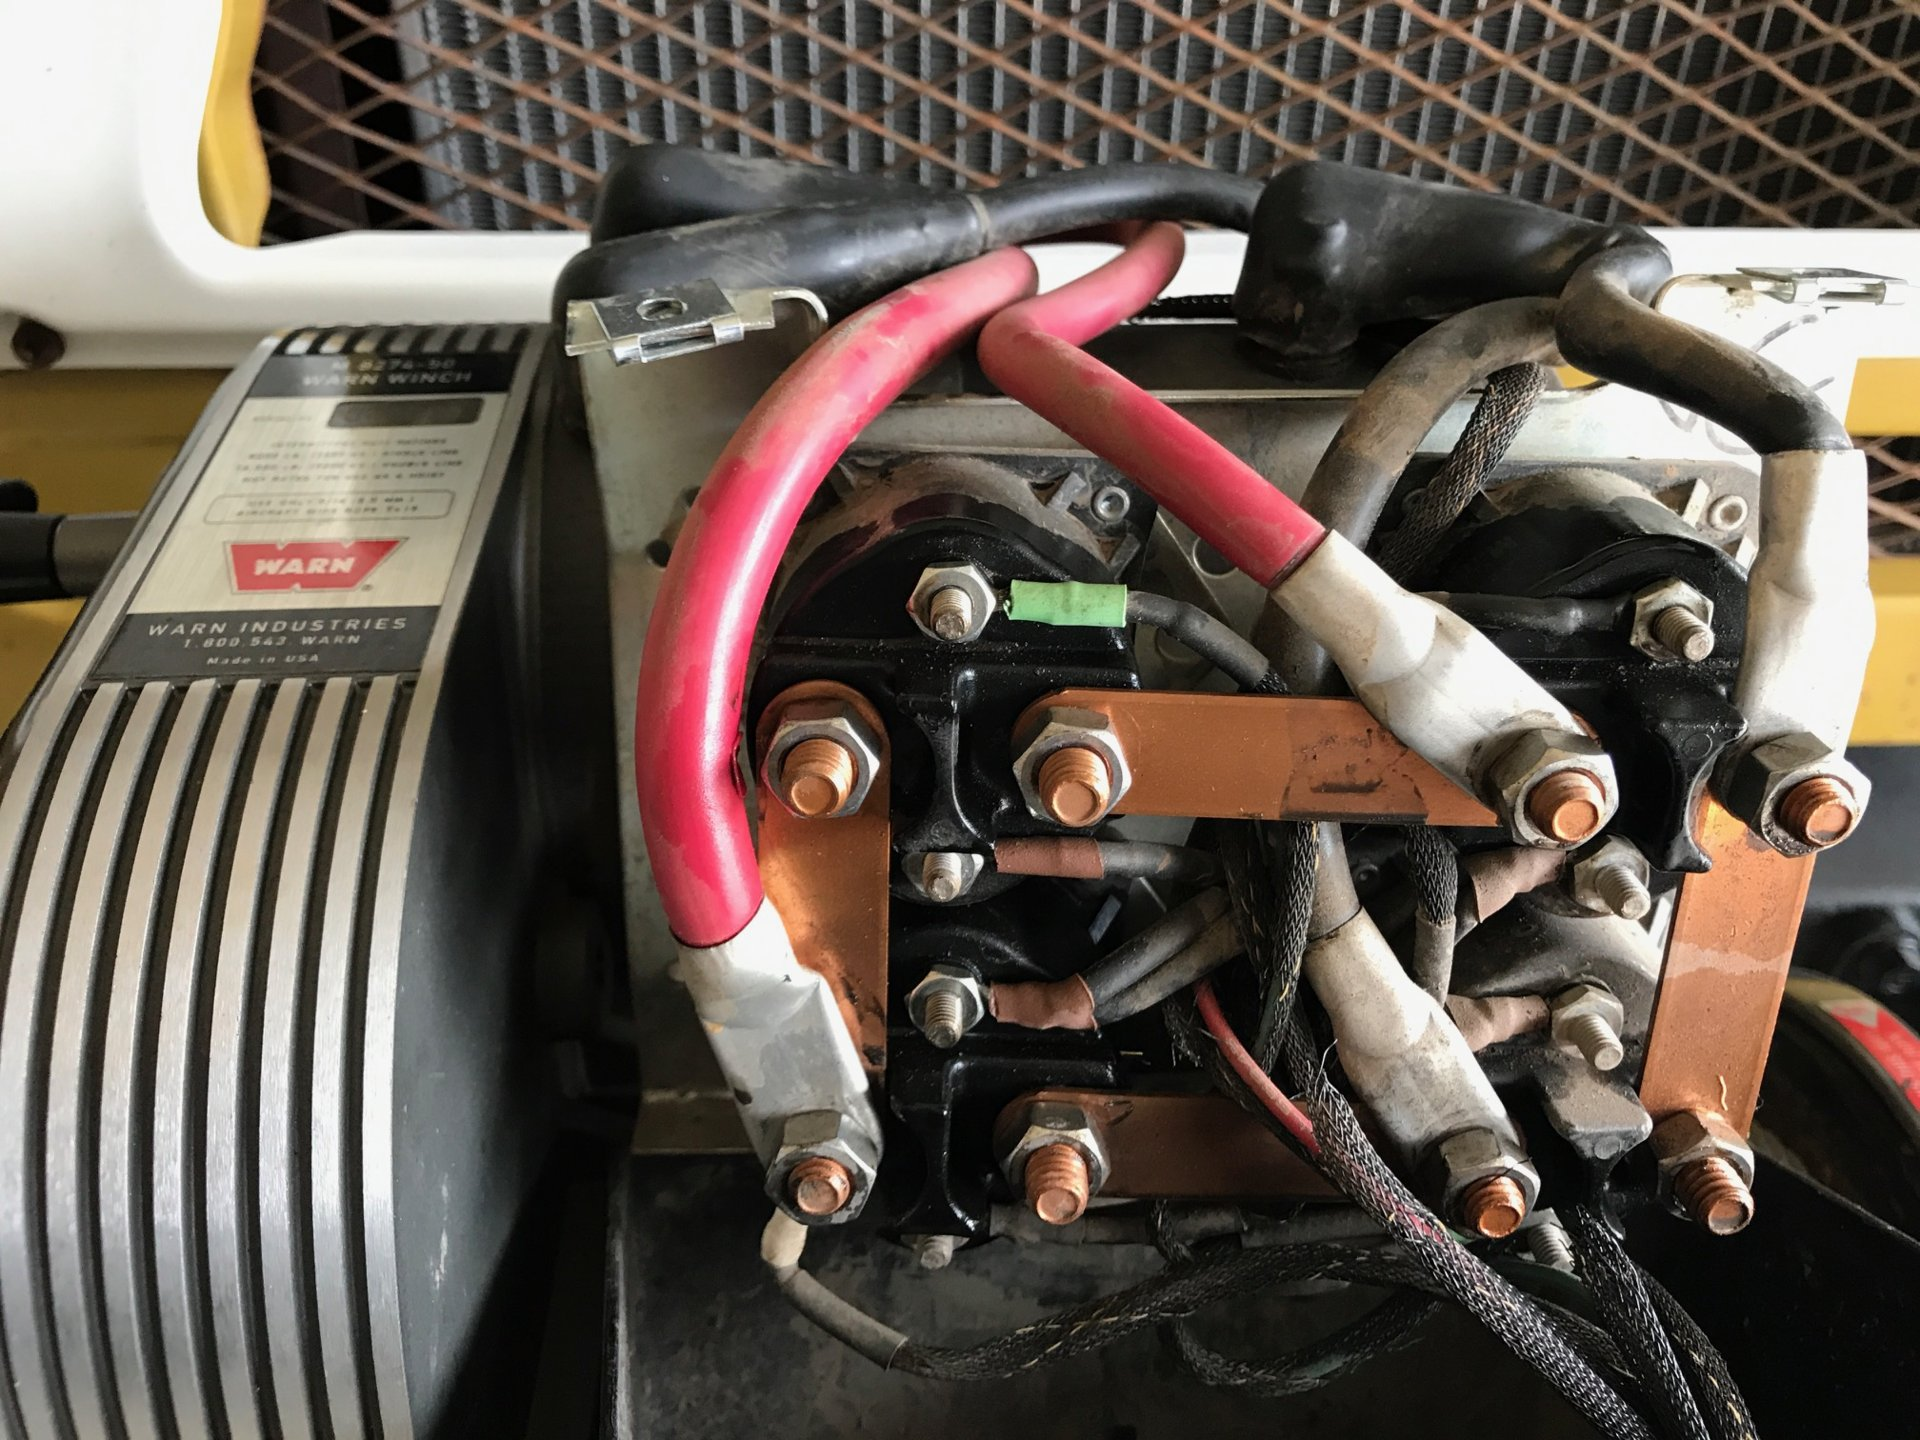 winch contactor wiring diagram warn 8274 50 solenoid question ih8mud forum  warn 8274 50 solenoid question ih8mud forum